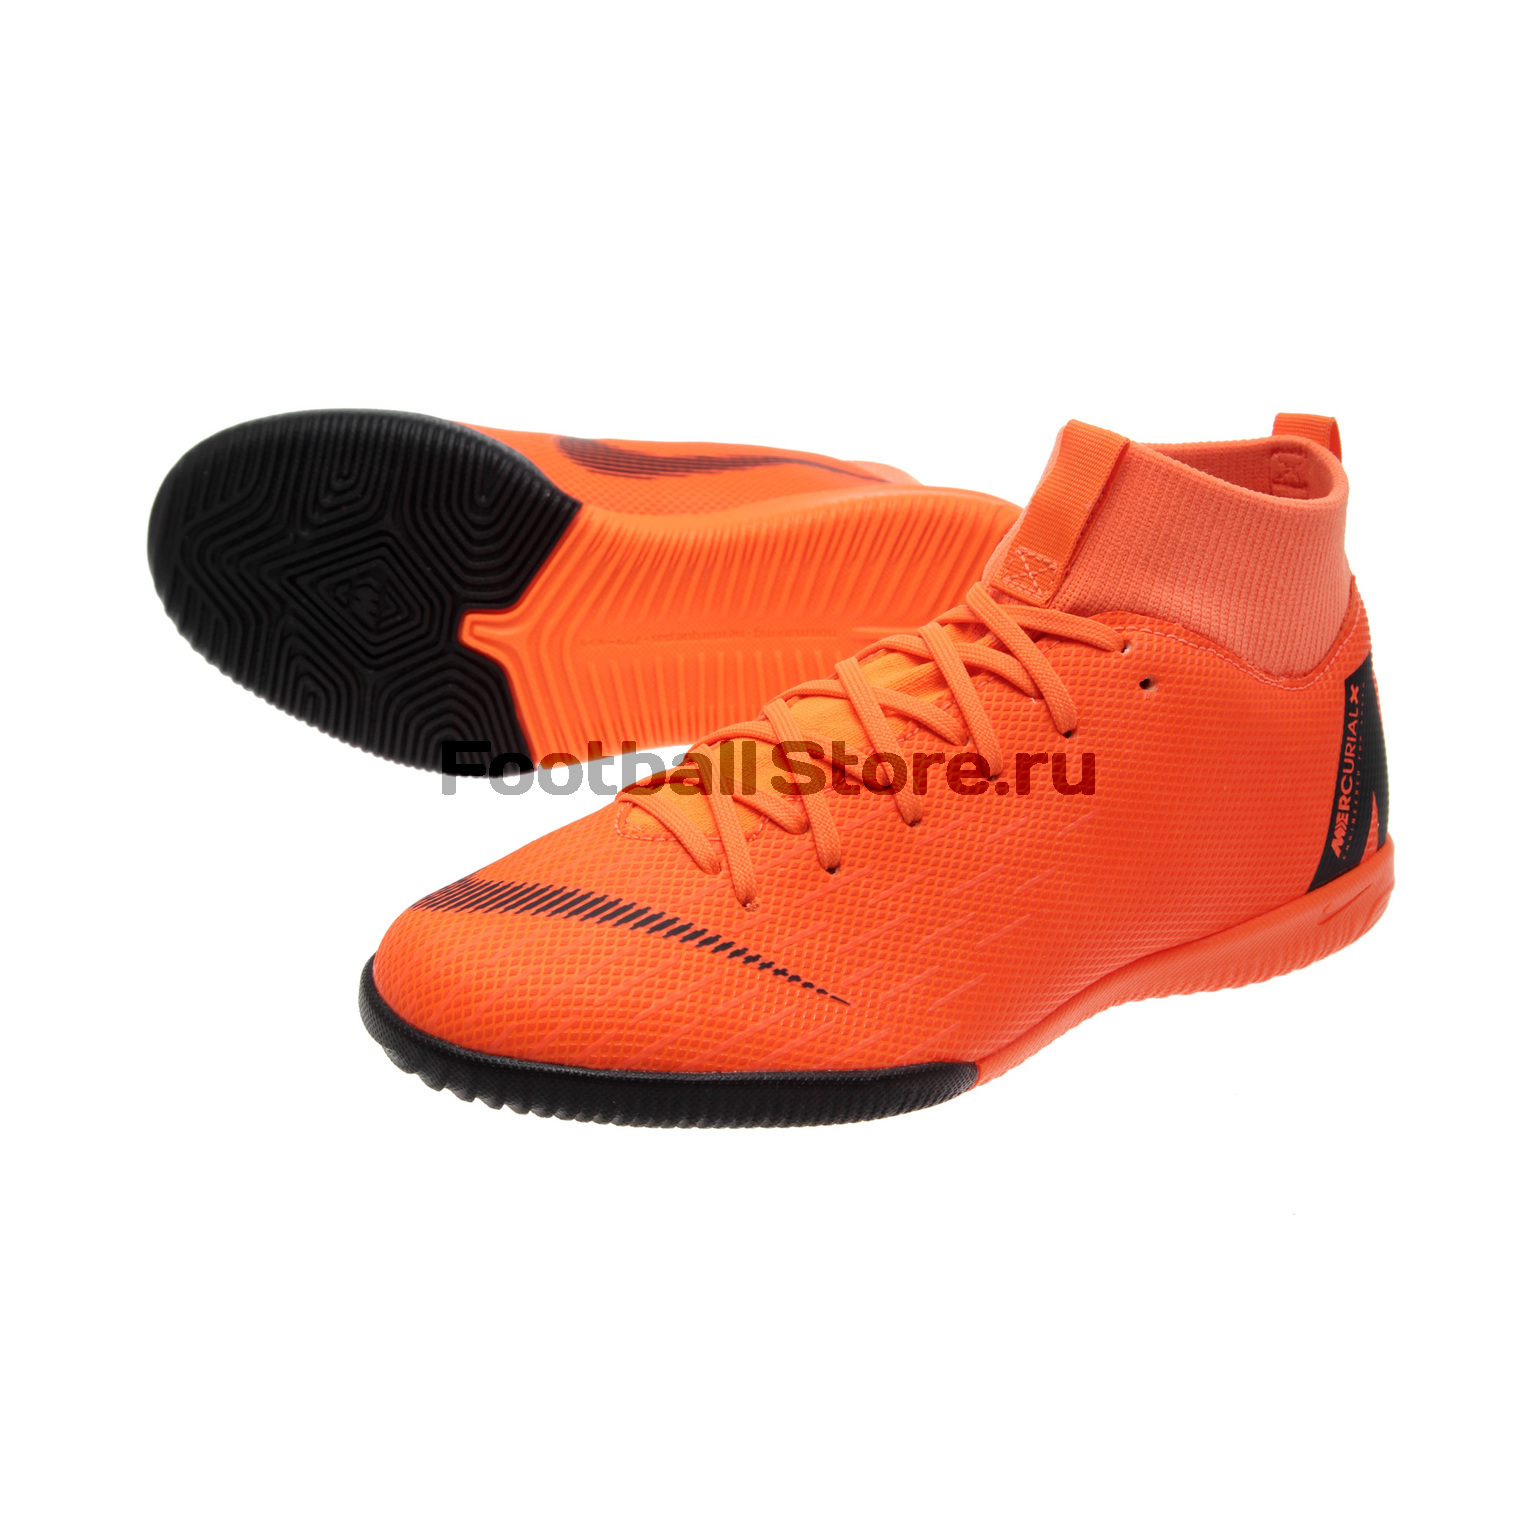 Обувь для зала Nike JR SuperflyX 6 Academy GS IC AH7343-810 бутсы nike superfly academy gs cr7 jr fg mg aj3111 390